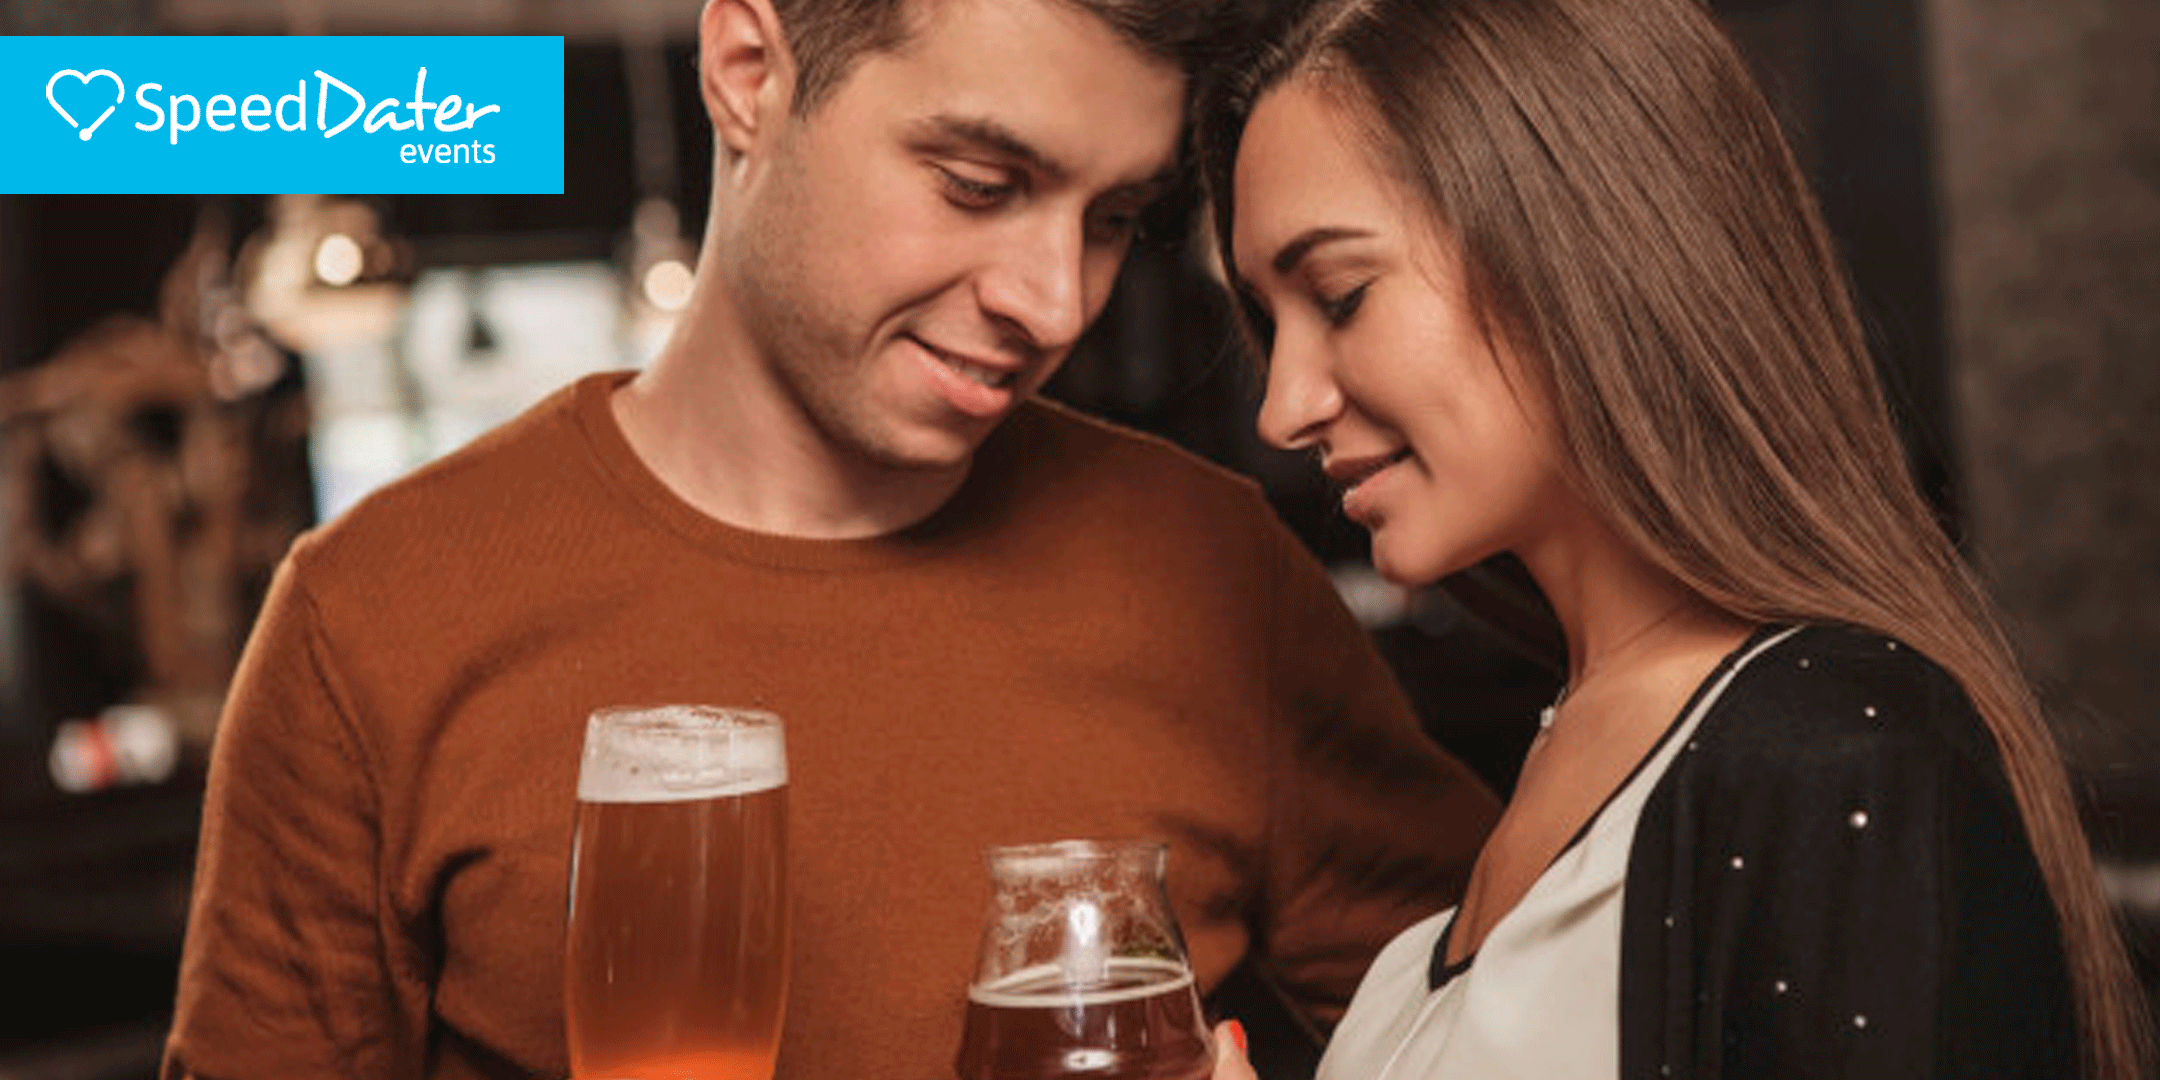 Glasgow Student Speed Dating | Ages 18-24